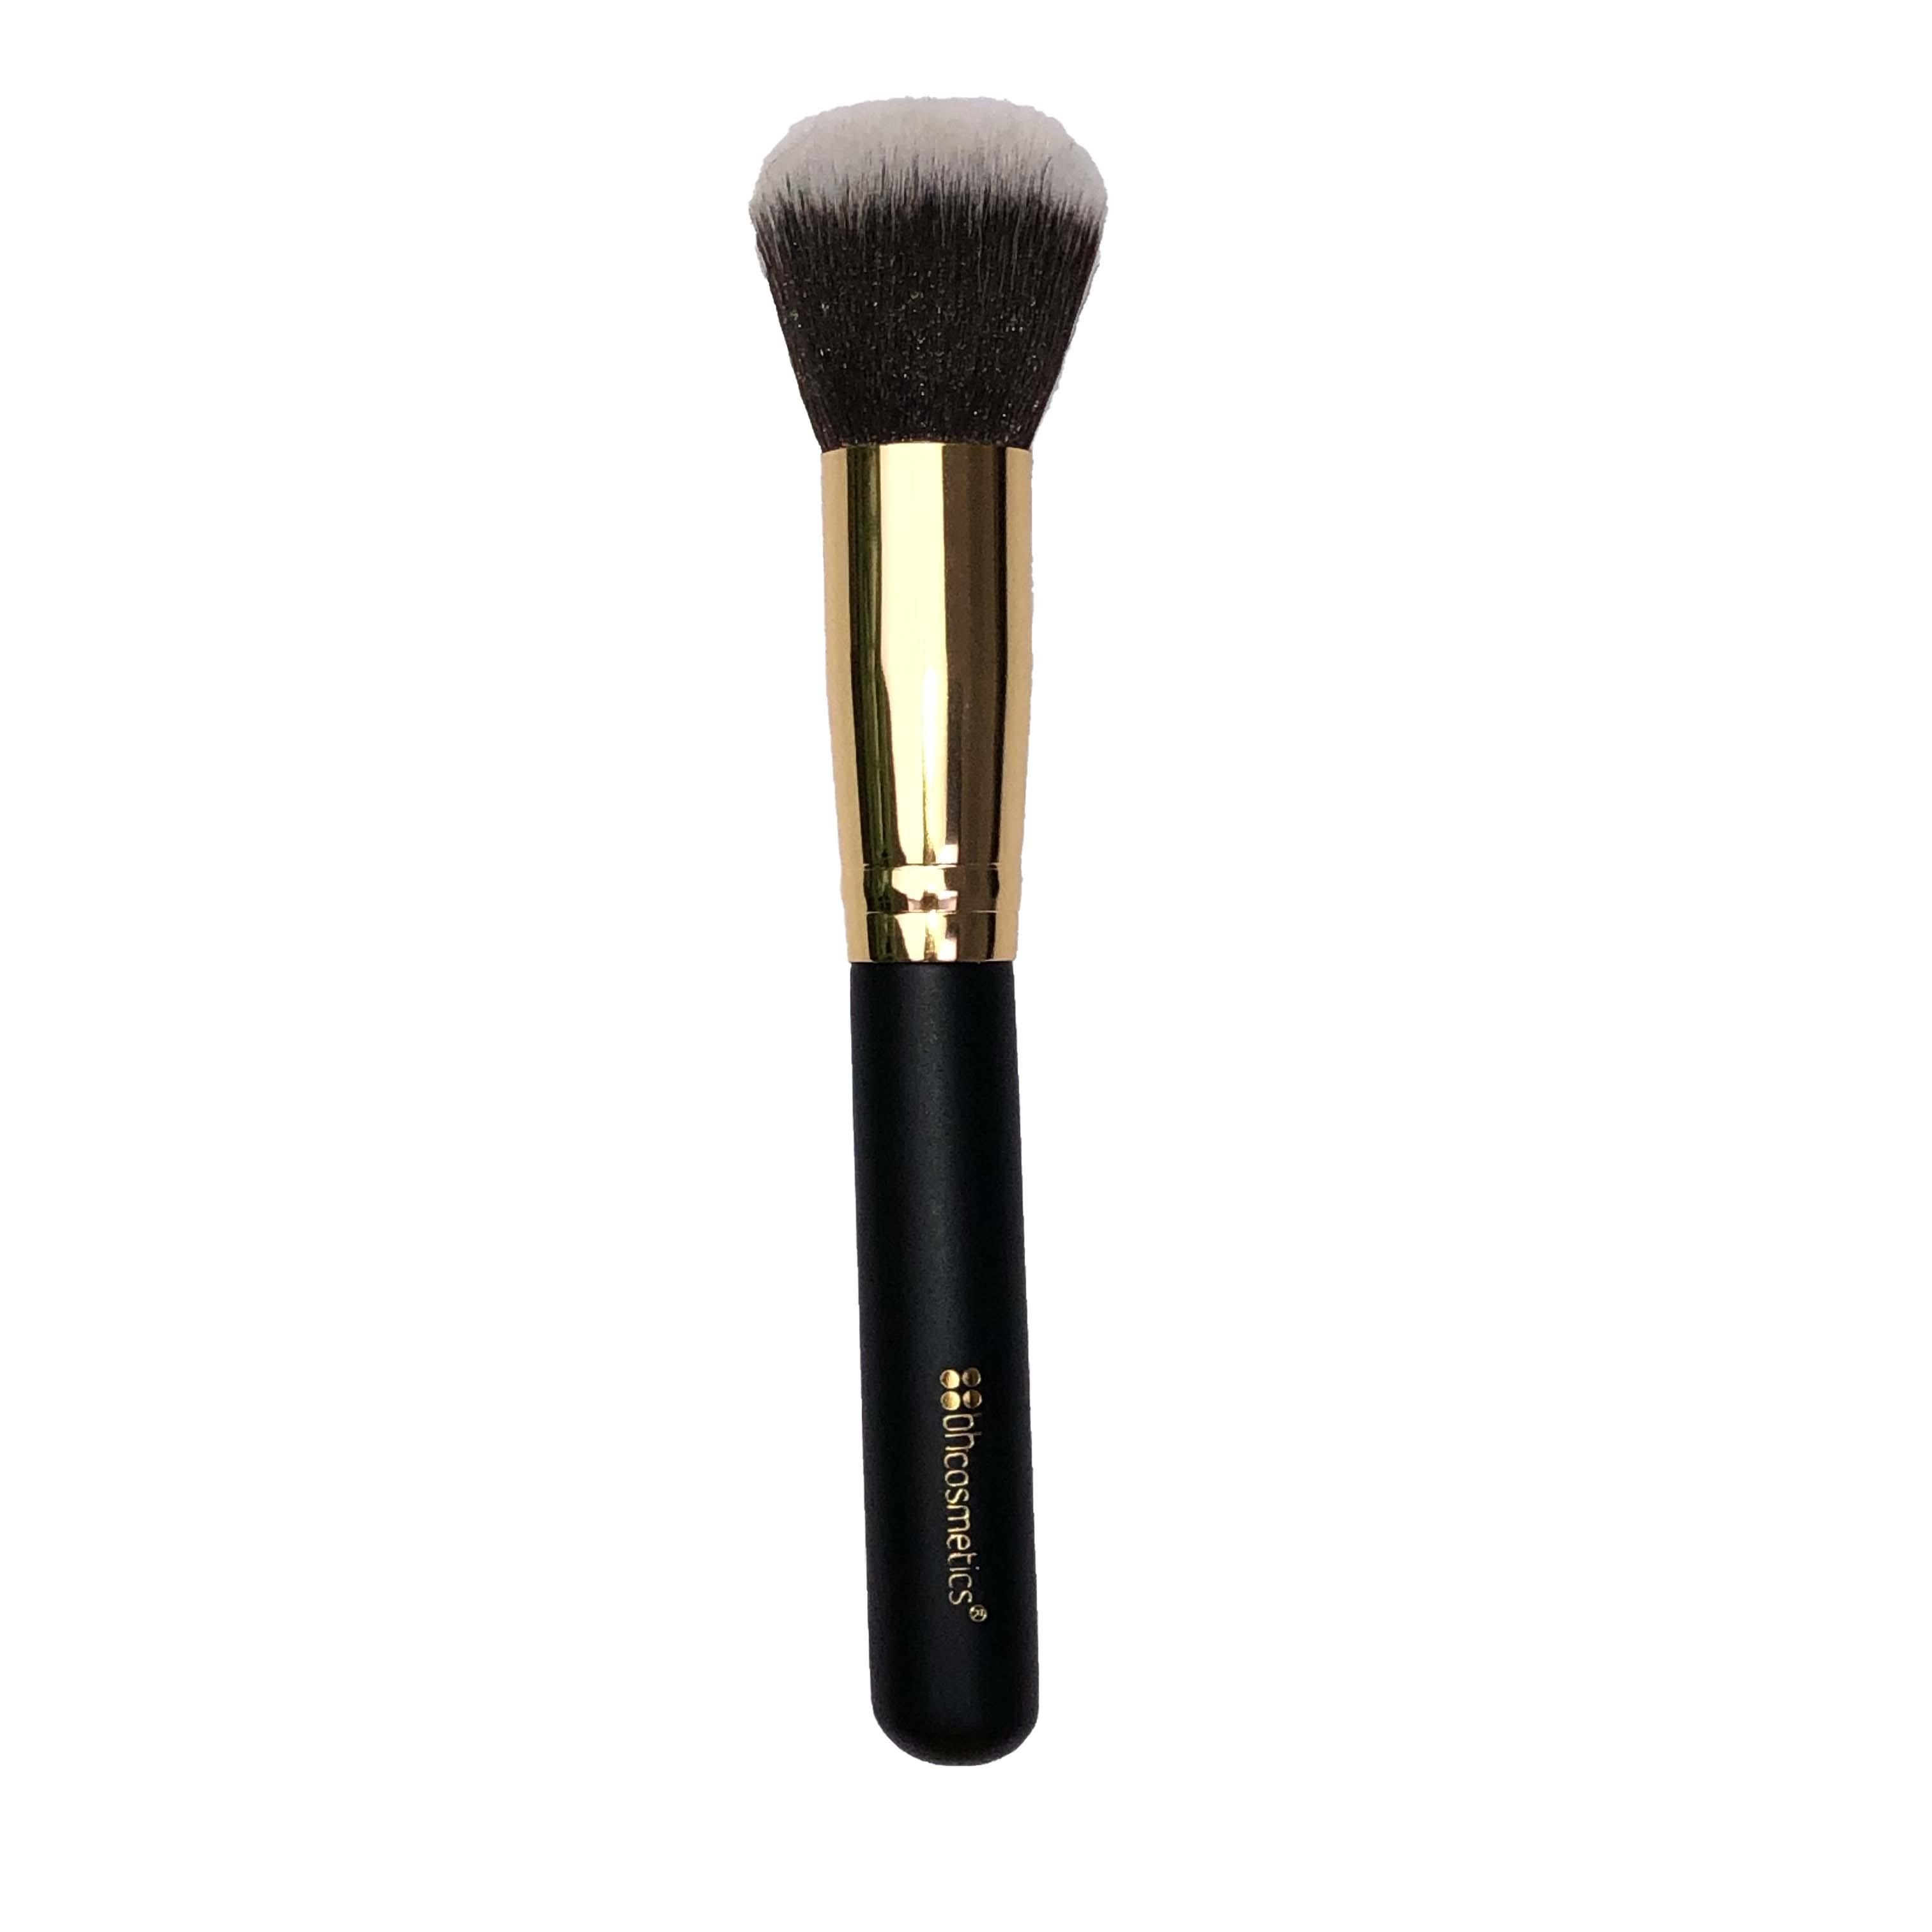 BH Cosmetics Large Fluffy Face Buffing Brush Gold